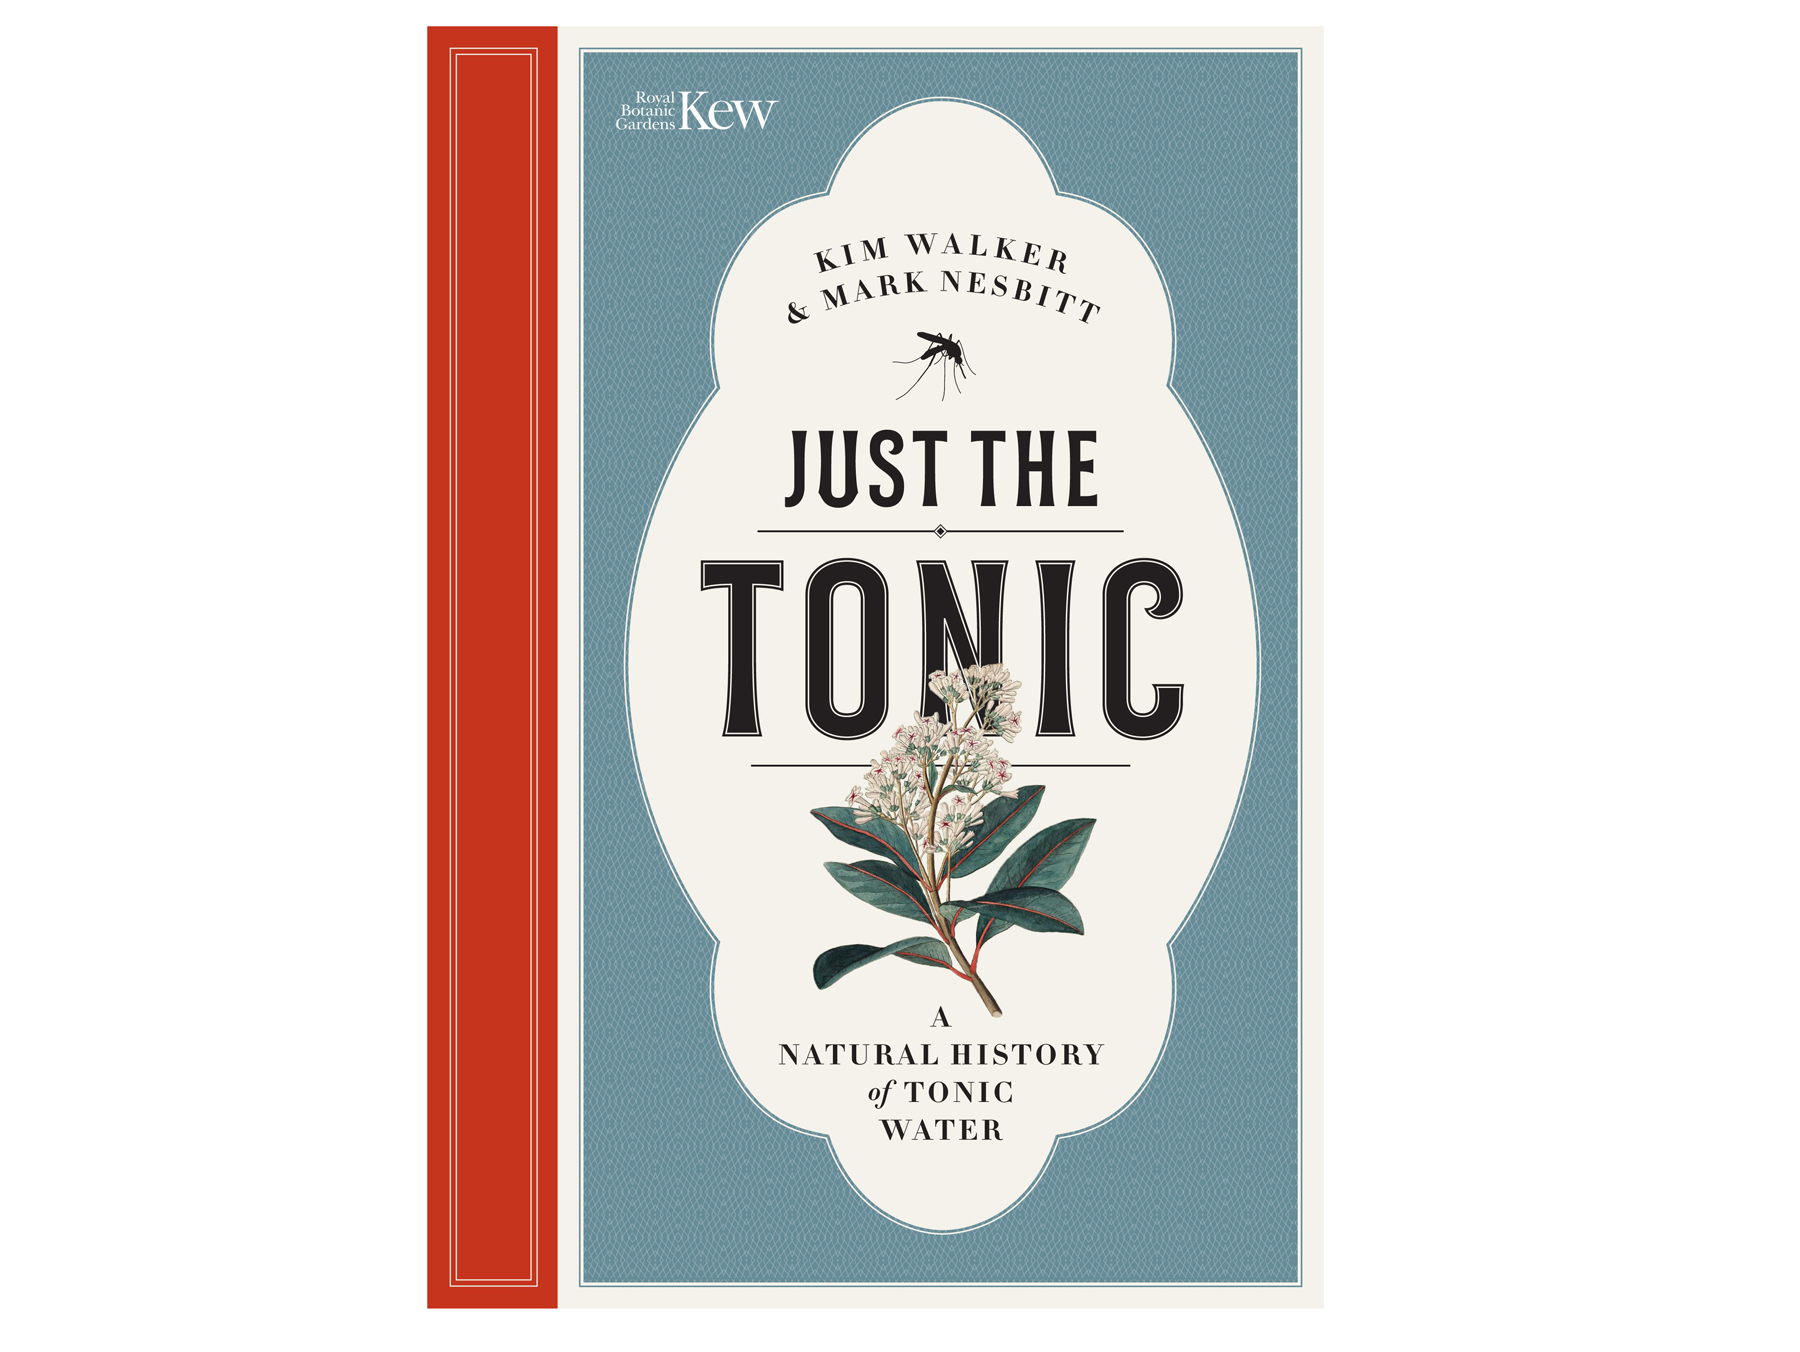 Just the Tonic: A Natural History of Tonic Water book cover